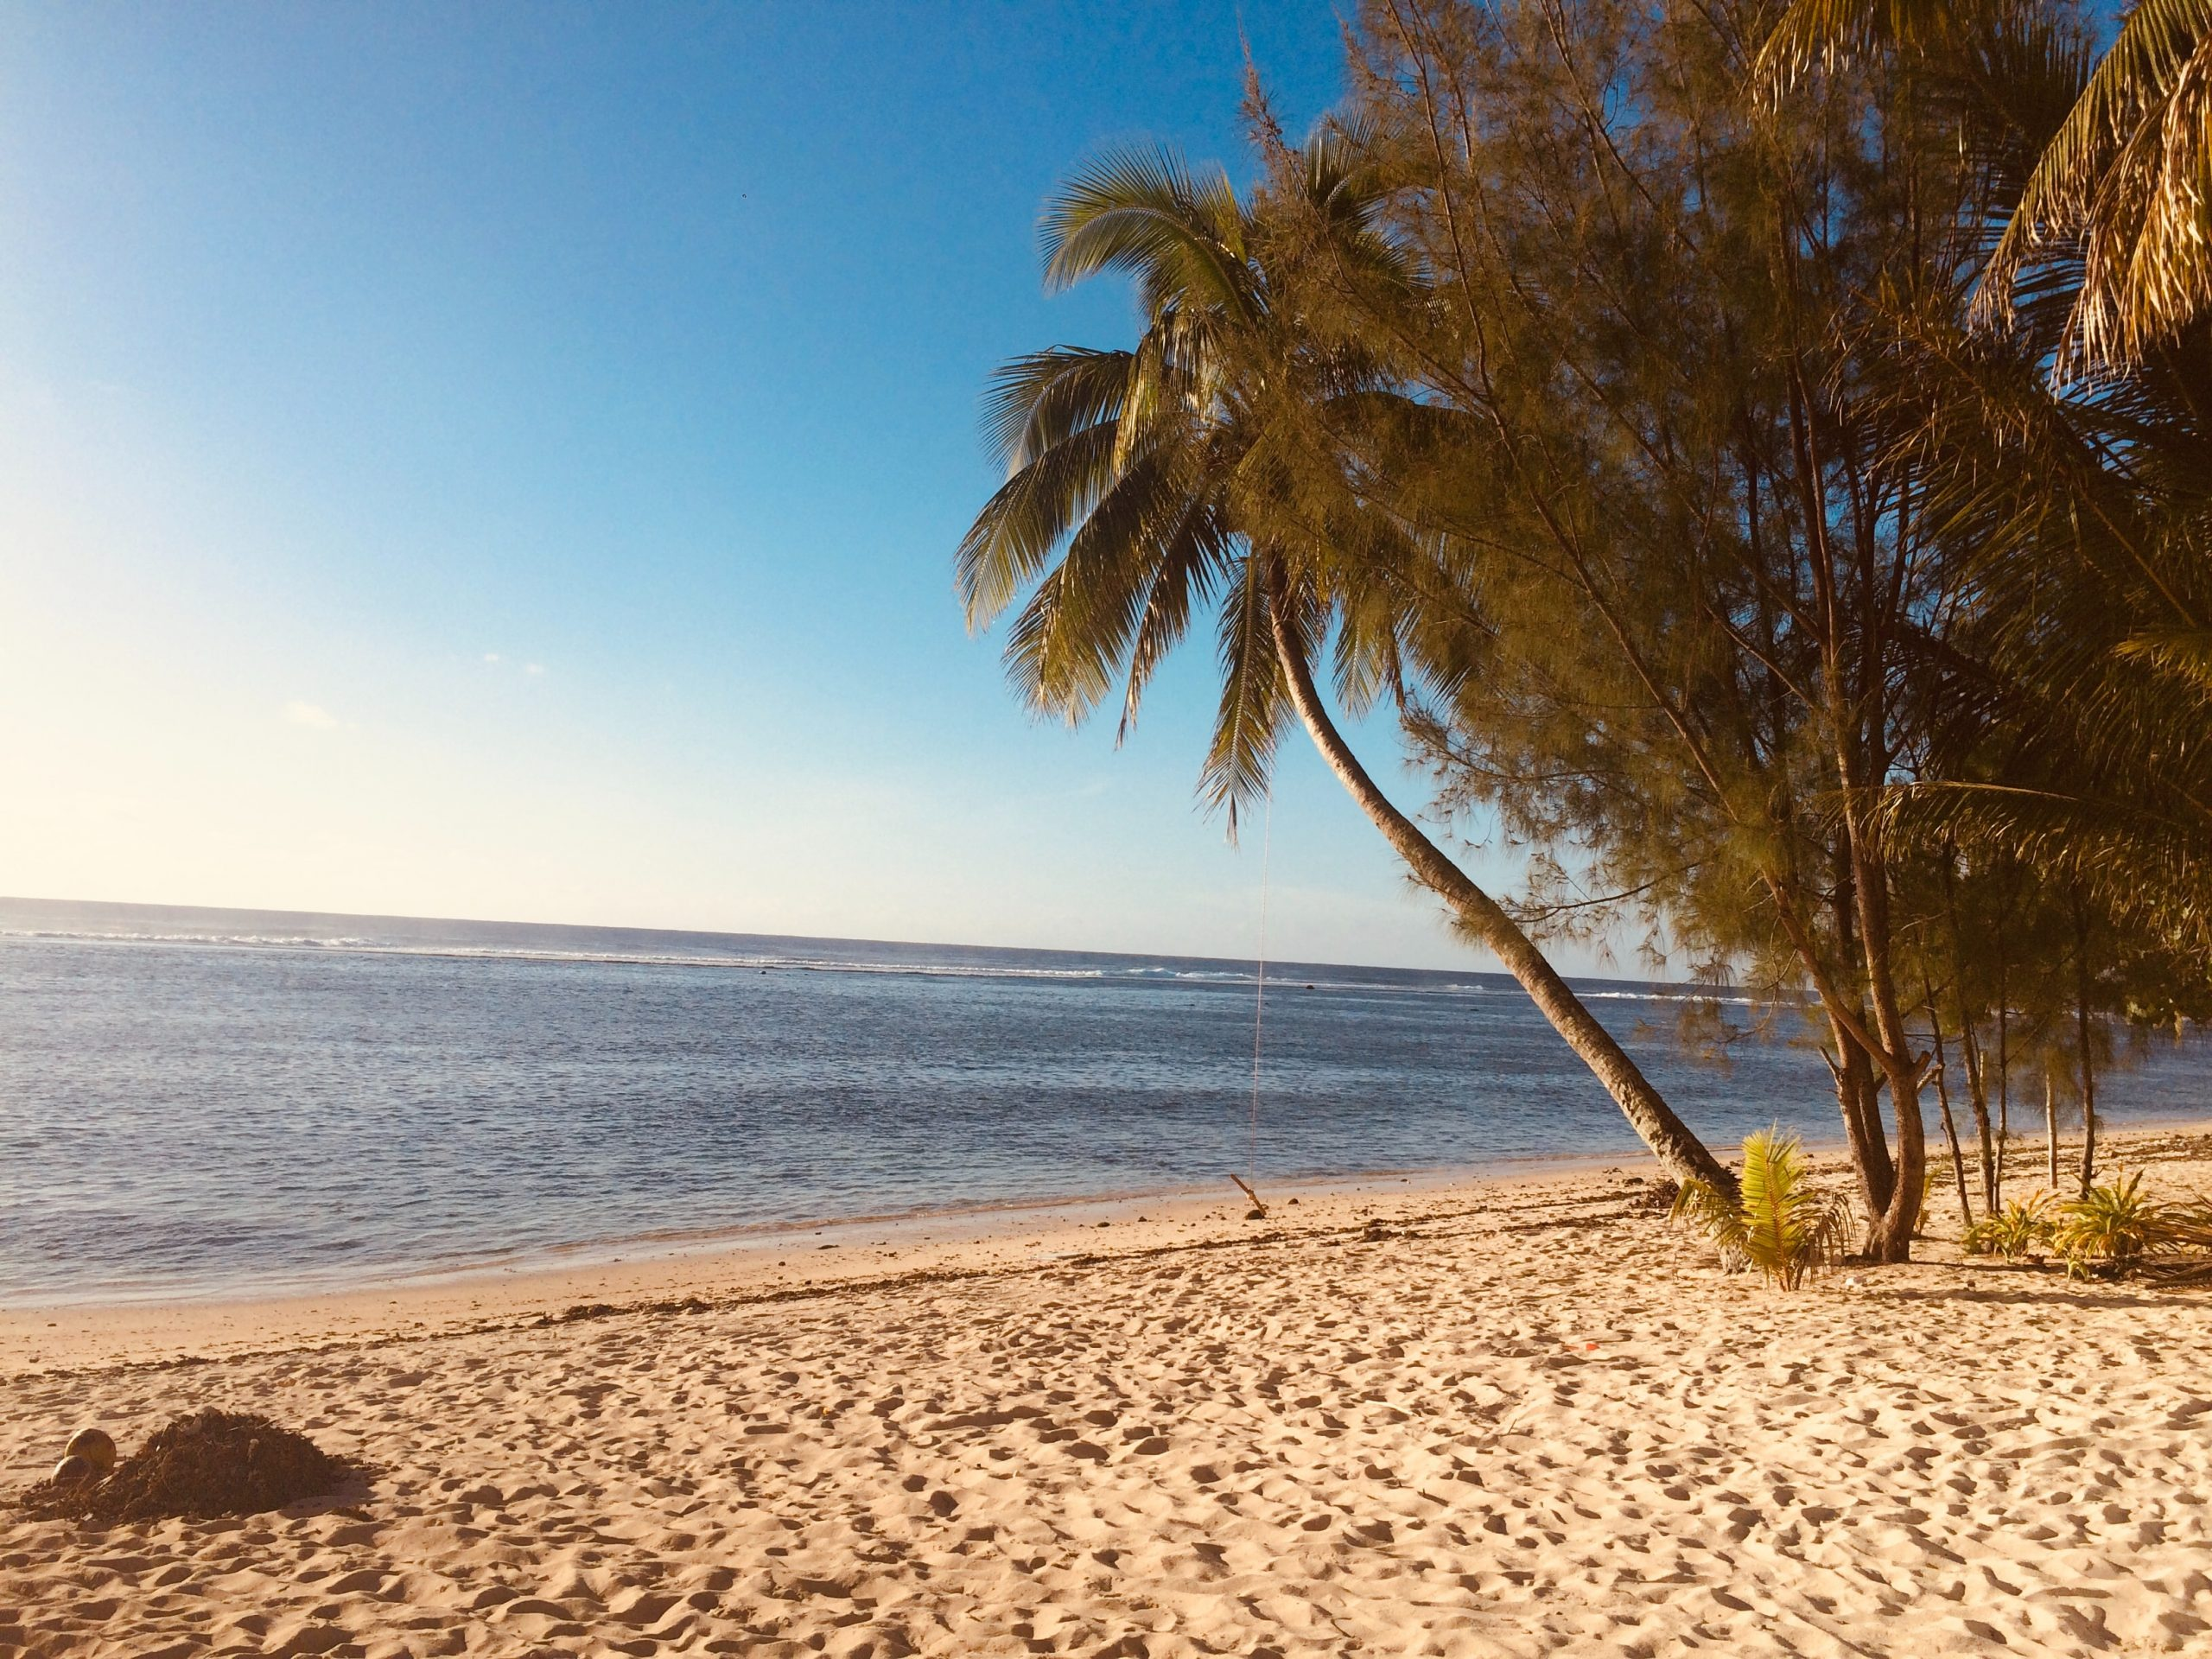 green palm tree on beach during daytime